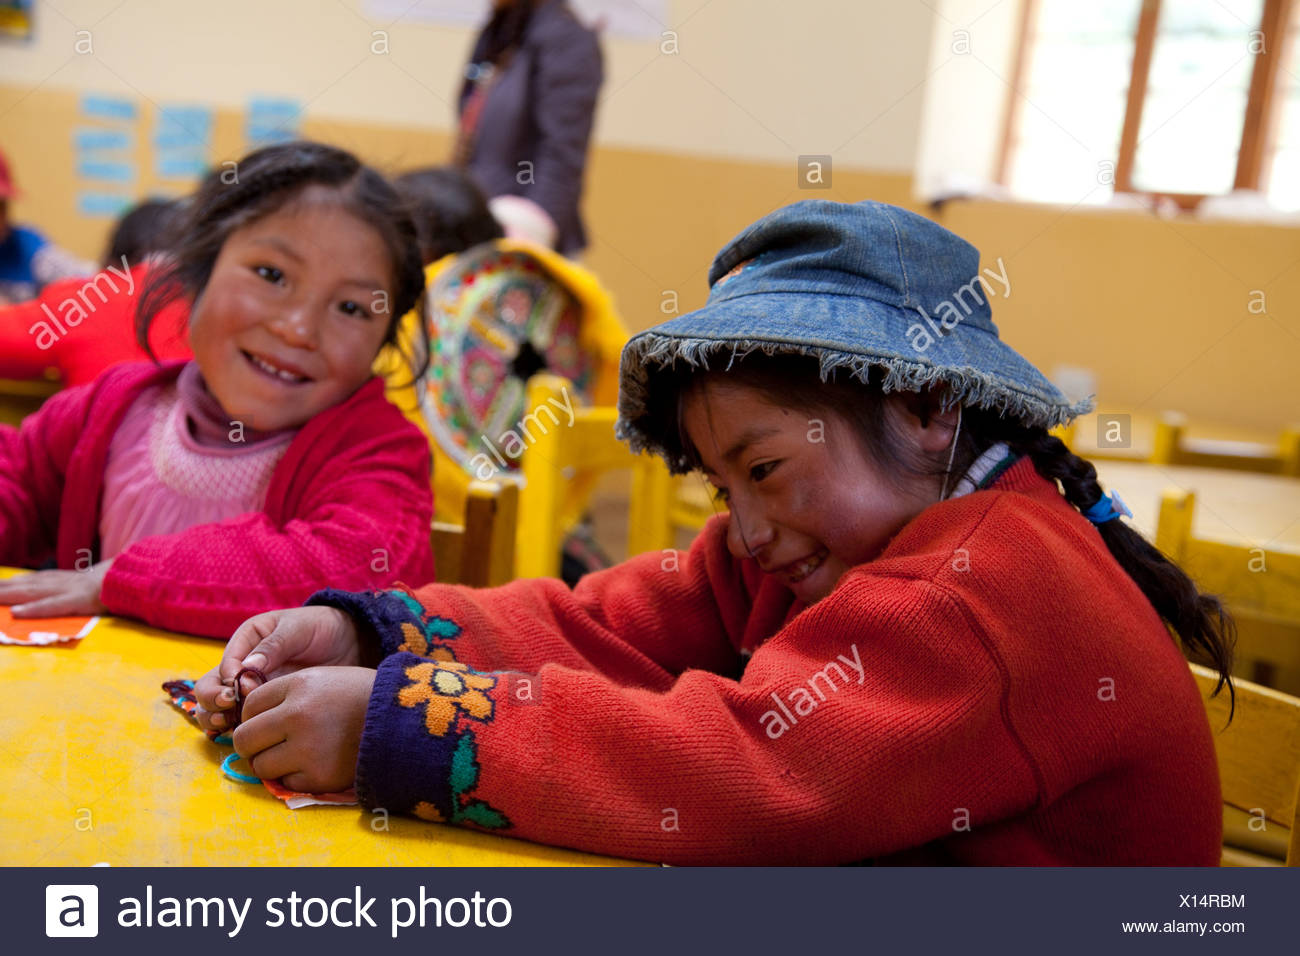 Two girls giggle at a preschool near Qusicancha, Peru. - Stock Image